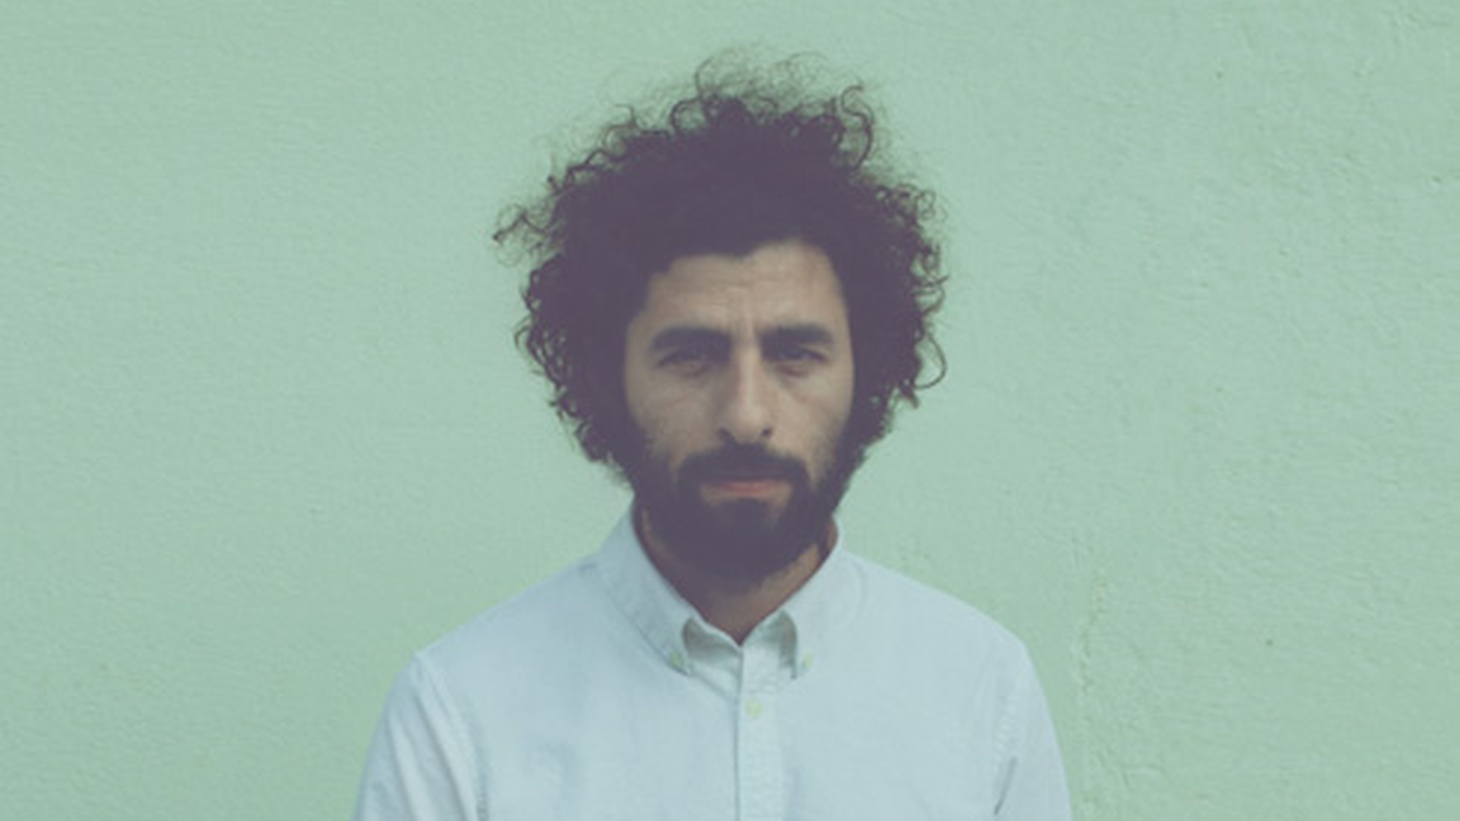 While we loved his work with Junip and on the soundtrack to The Secret Life of Walter Mitty, we've been eagerly awaiting new solo work from José González.